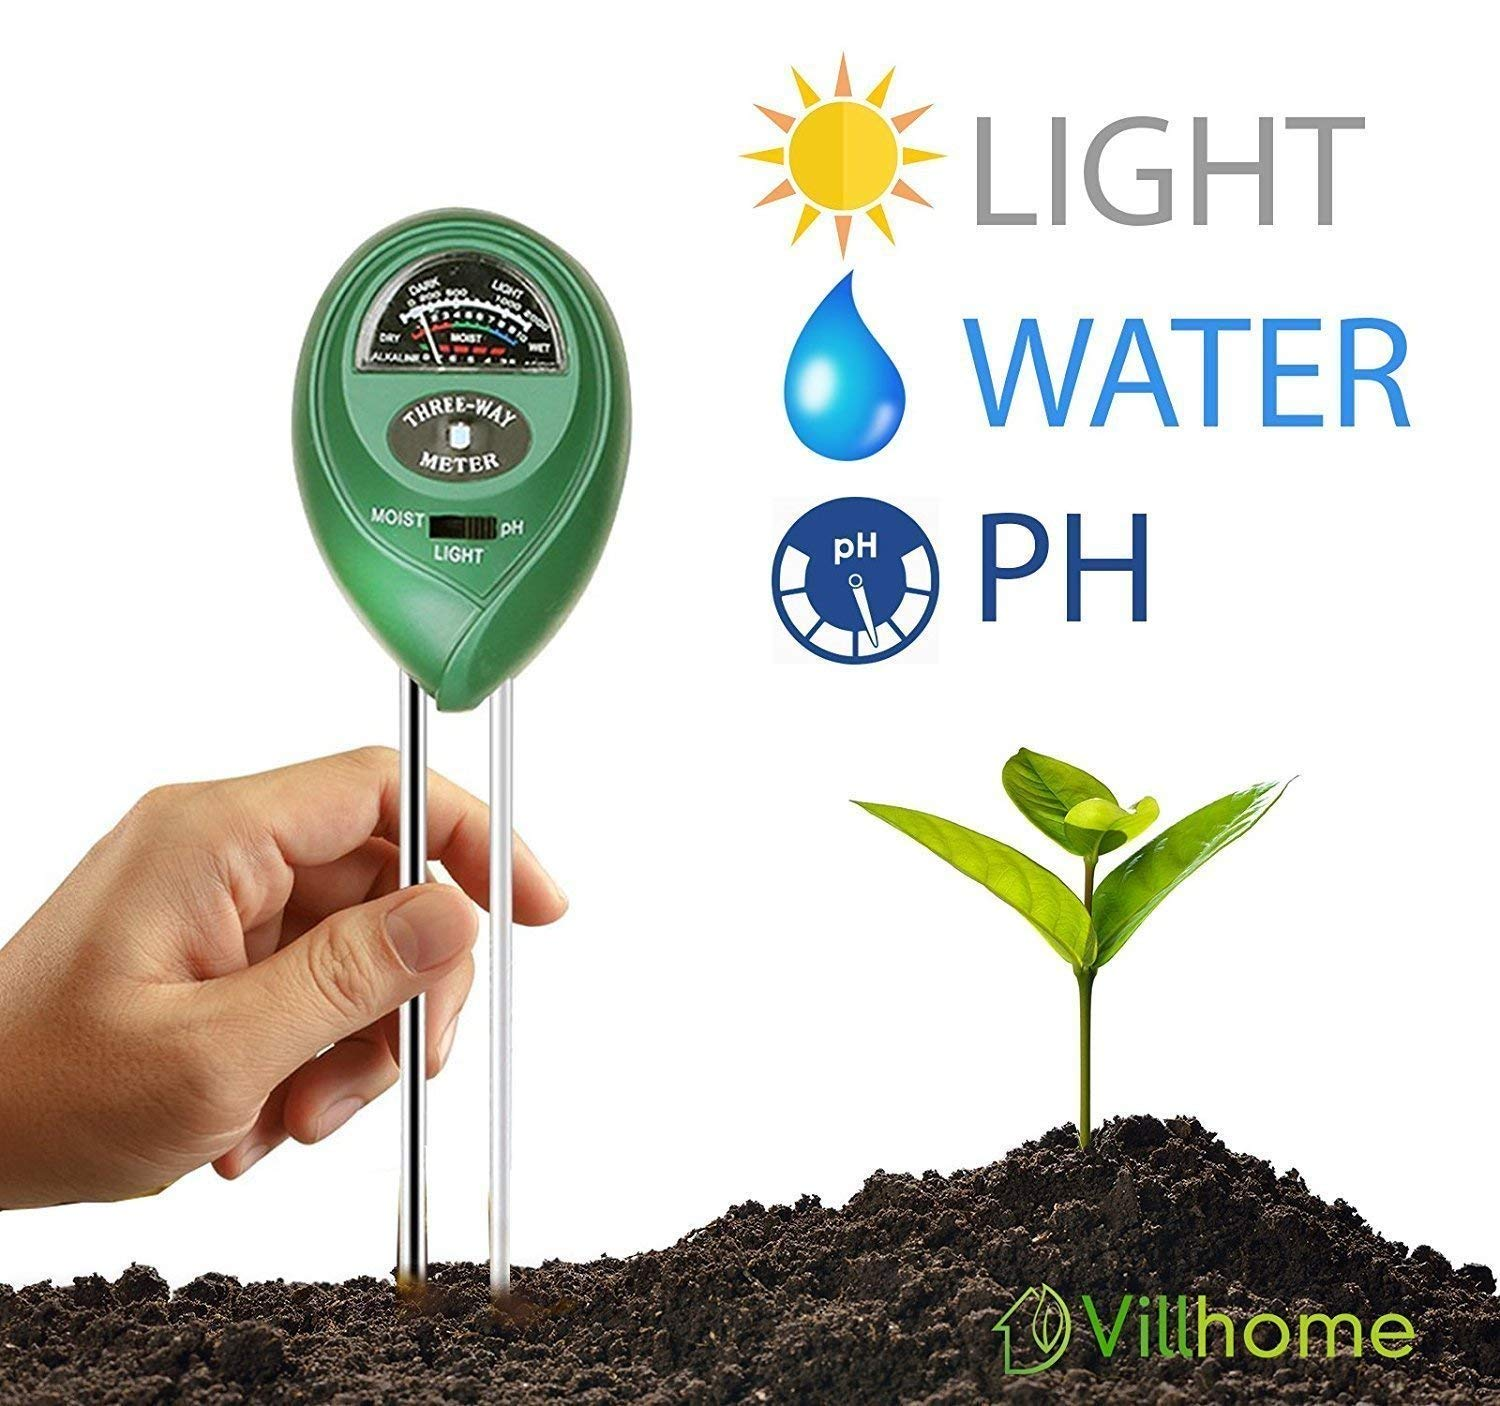 Villhome Soil pH Meter, 3-in-1 Soil Test Kit For Moisture, Light & pH, A Must Have Soil pH Meter For Home and Garden, Lawn, Indoor/Outdoors Plant Care Soil pH Tester, Best Soil pH Meter for 2018